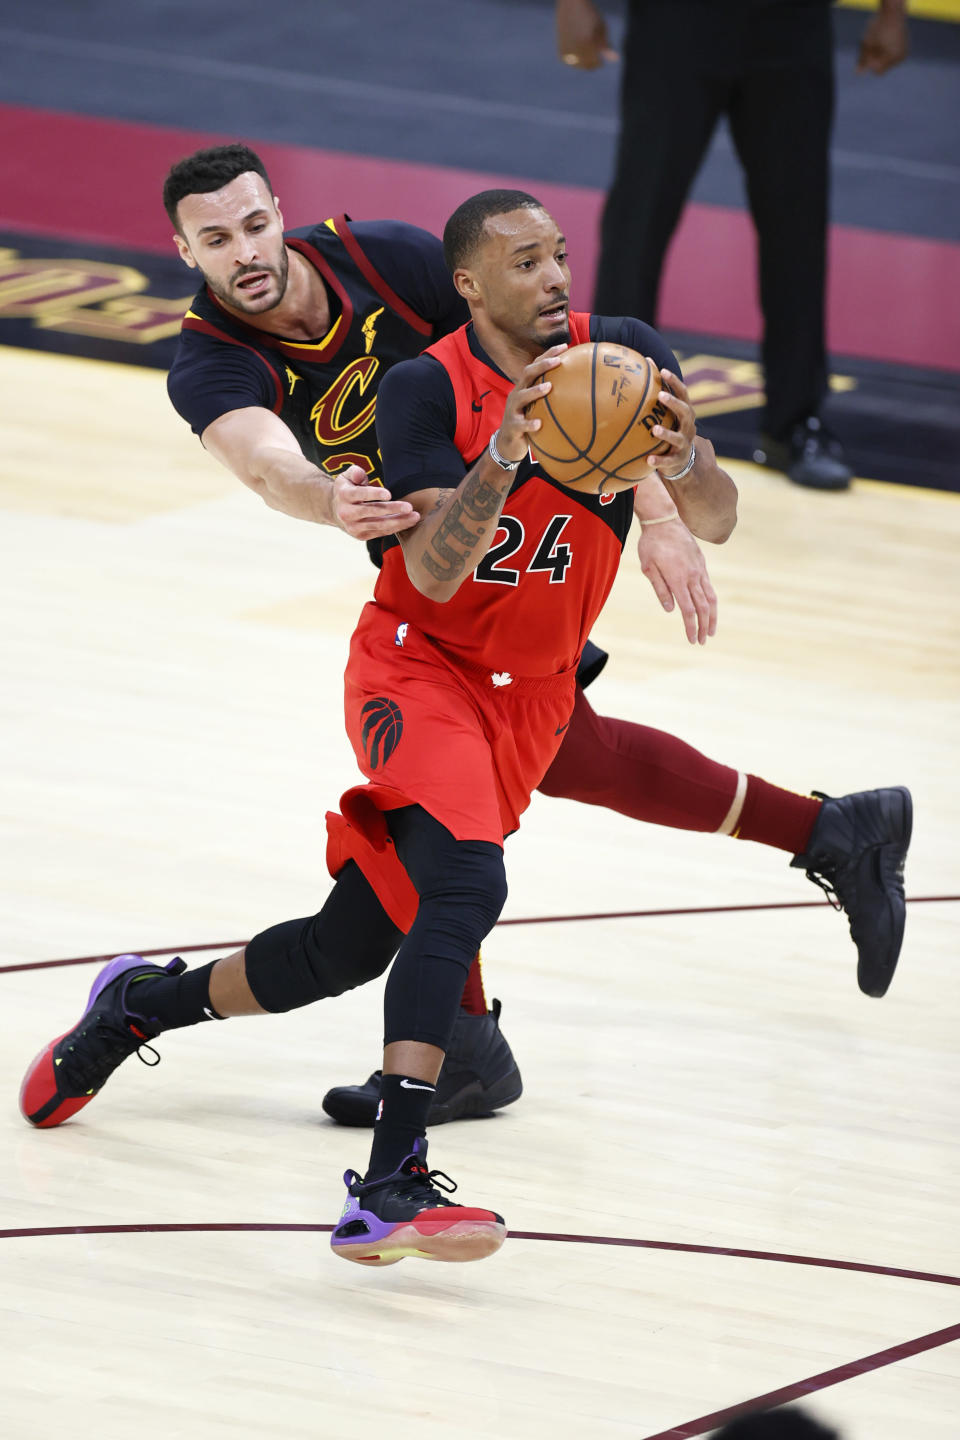 Toronto Raptors' Norman Powell (24) drives past Cleveland Cavaliers' Larry Nance Jr. (22) in the second half of an NBA basketball game, Sunday, March 21, 2021, in Cleveland. (AP Photo/Ron Schwane)